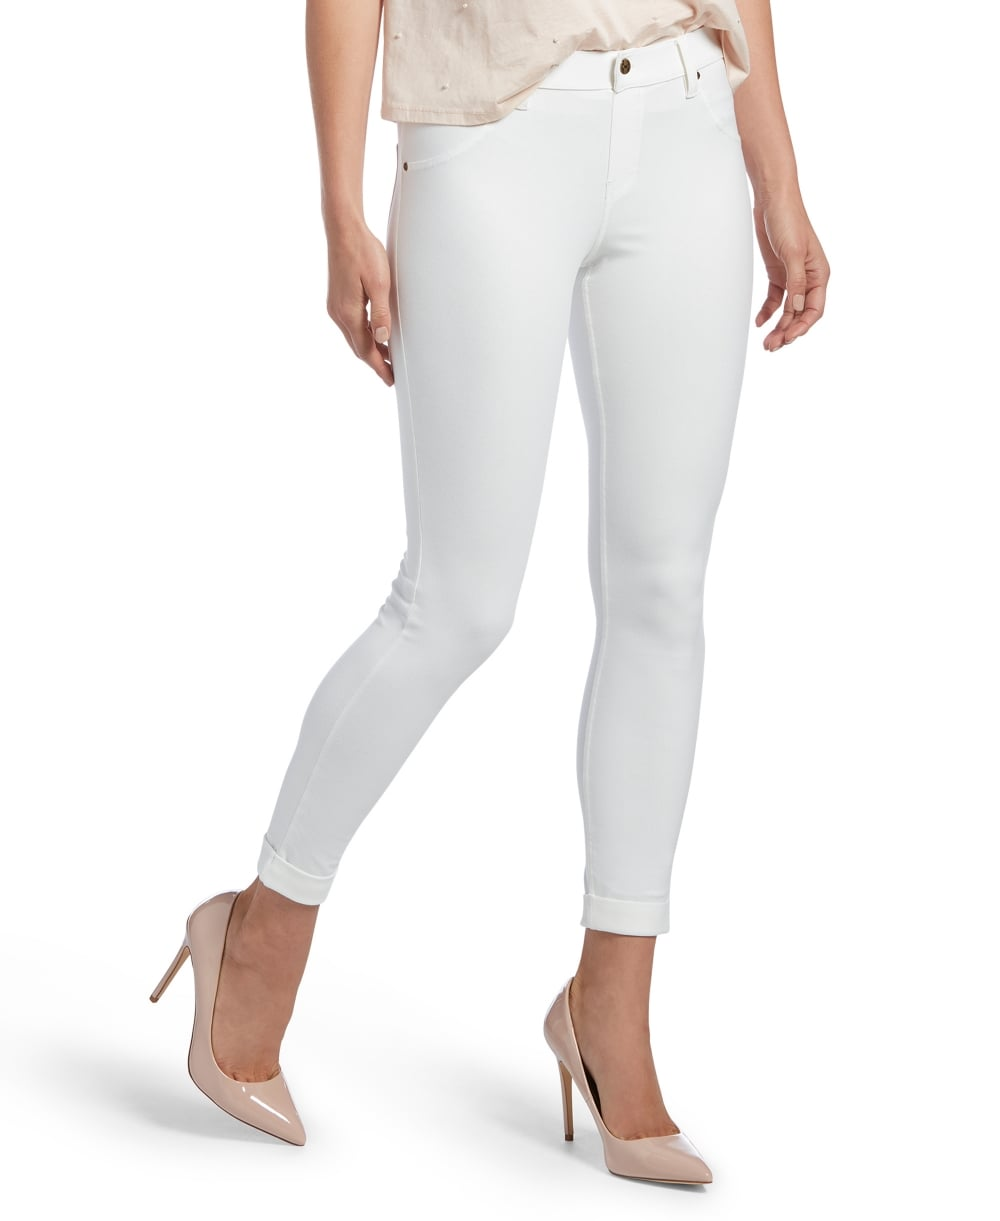 517ad7dd4cf887 HUE Cuffed Essential Denim Skimmer - Leggings from luxury-legs.com UK